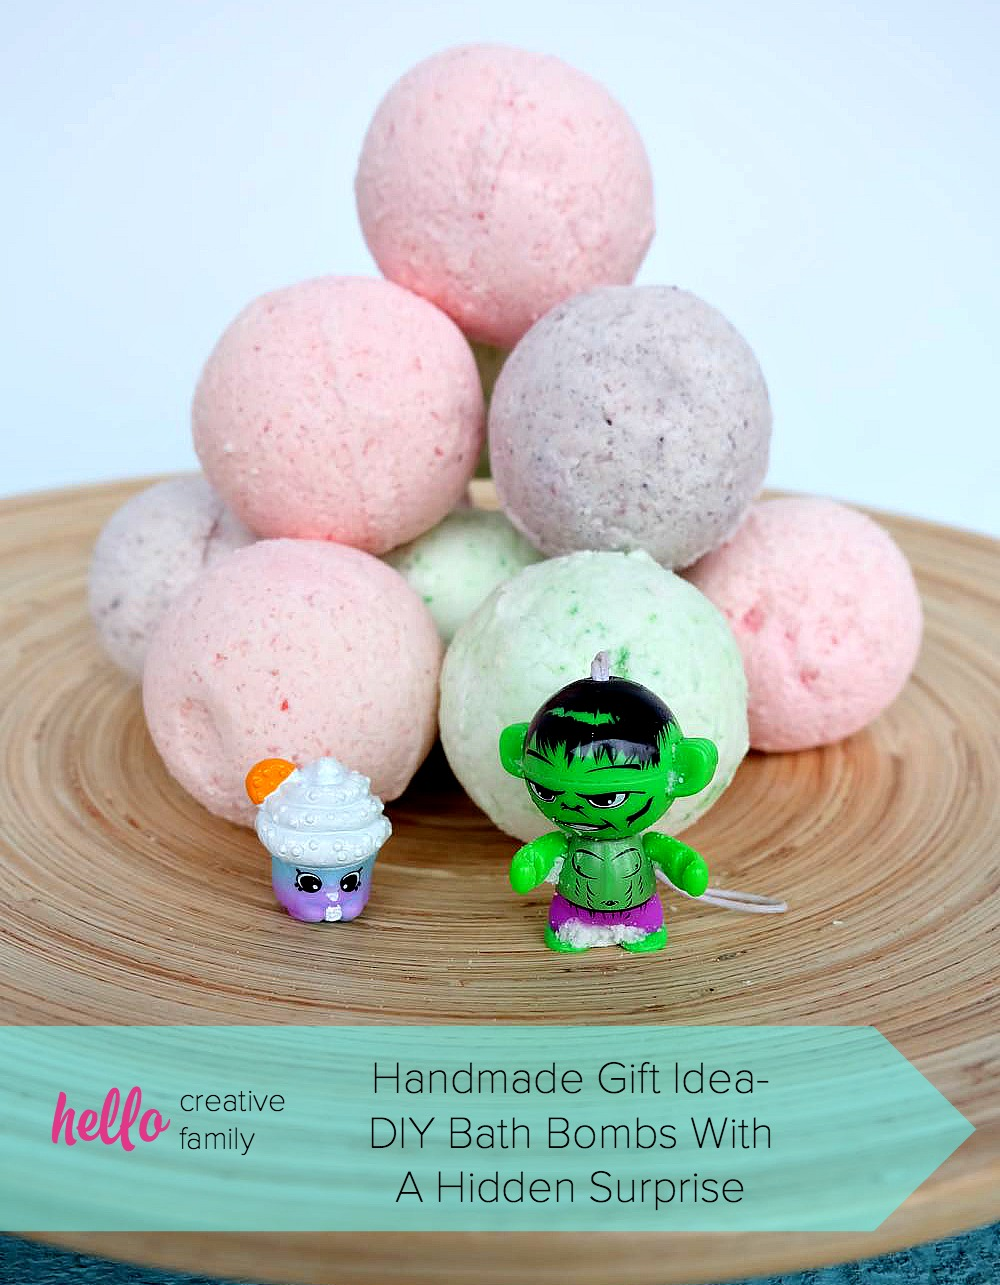 DIY Your Own Handmade Bath Bombs With This Simple And Easy Tutorial Which Includes A